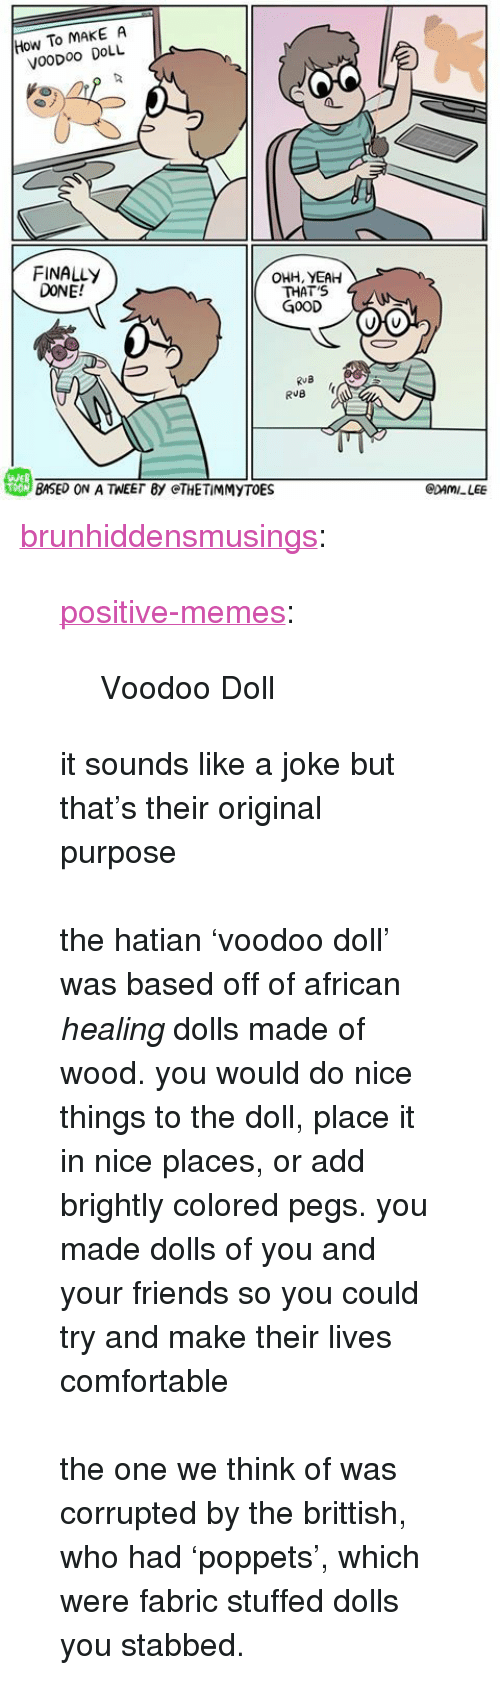 """Comfortable, Friends, and Memes: How To MAKE A  VooDoo DOLL  FINALLY  DONE!  OHH, YEAH  THAT'S  G0OD  RuB  戀BASED ON A TEE「BY @THE TİMMYTOE  WEB  CDAMILEE <p><a href=""""https://brunhiddensmusings.tumblr.com/post/161667691330/positive-memes-voodoo-doll-it-sounds-like-a-joke"""" class=""""tumblr_blog"""">brunhiddensmusings</a>:</p><blockquote> <p><a href=""""https://positive-memes.tumblr.com/post/161665755470/voodoo-doll"""" class=""""tumblr_blog"""">positive-memes</a>:</p> <blockquote><p>Voodoo Doll</p></blockquote> <p>it sounds like a joke but that's their original purpose<br/><br/>the hatian 'voodoo doll' was based off of african <i>healing </i>dolls made of wood. you would do nice things to the doll, place it in nice places, or add brightly colored pegs. you made dolls of you and your friends so you could try and make their lives comfortable<br/><br/>the one we think of was corrupted by the brittish, who had 'poppets', which were fabric stuffed dolls you stabbed. <br/></p> </blockquote>"""